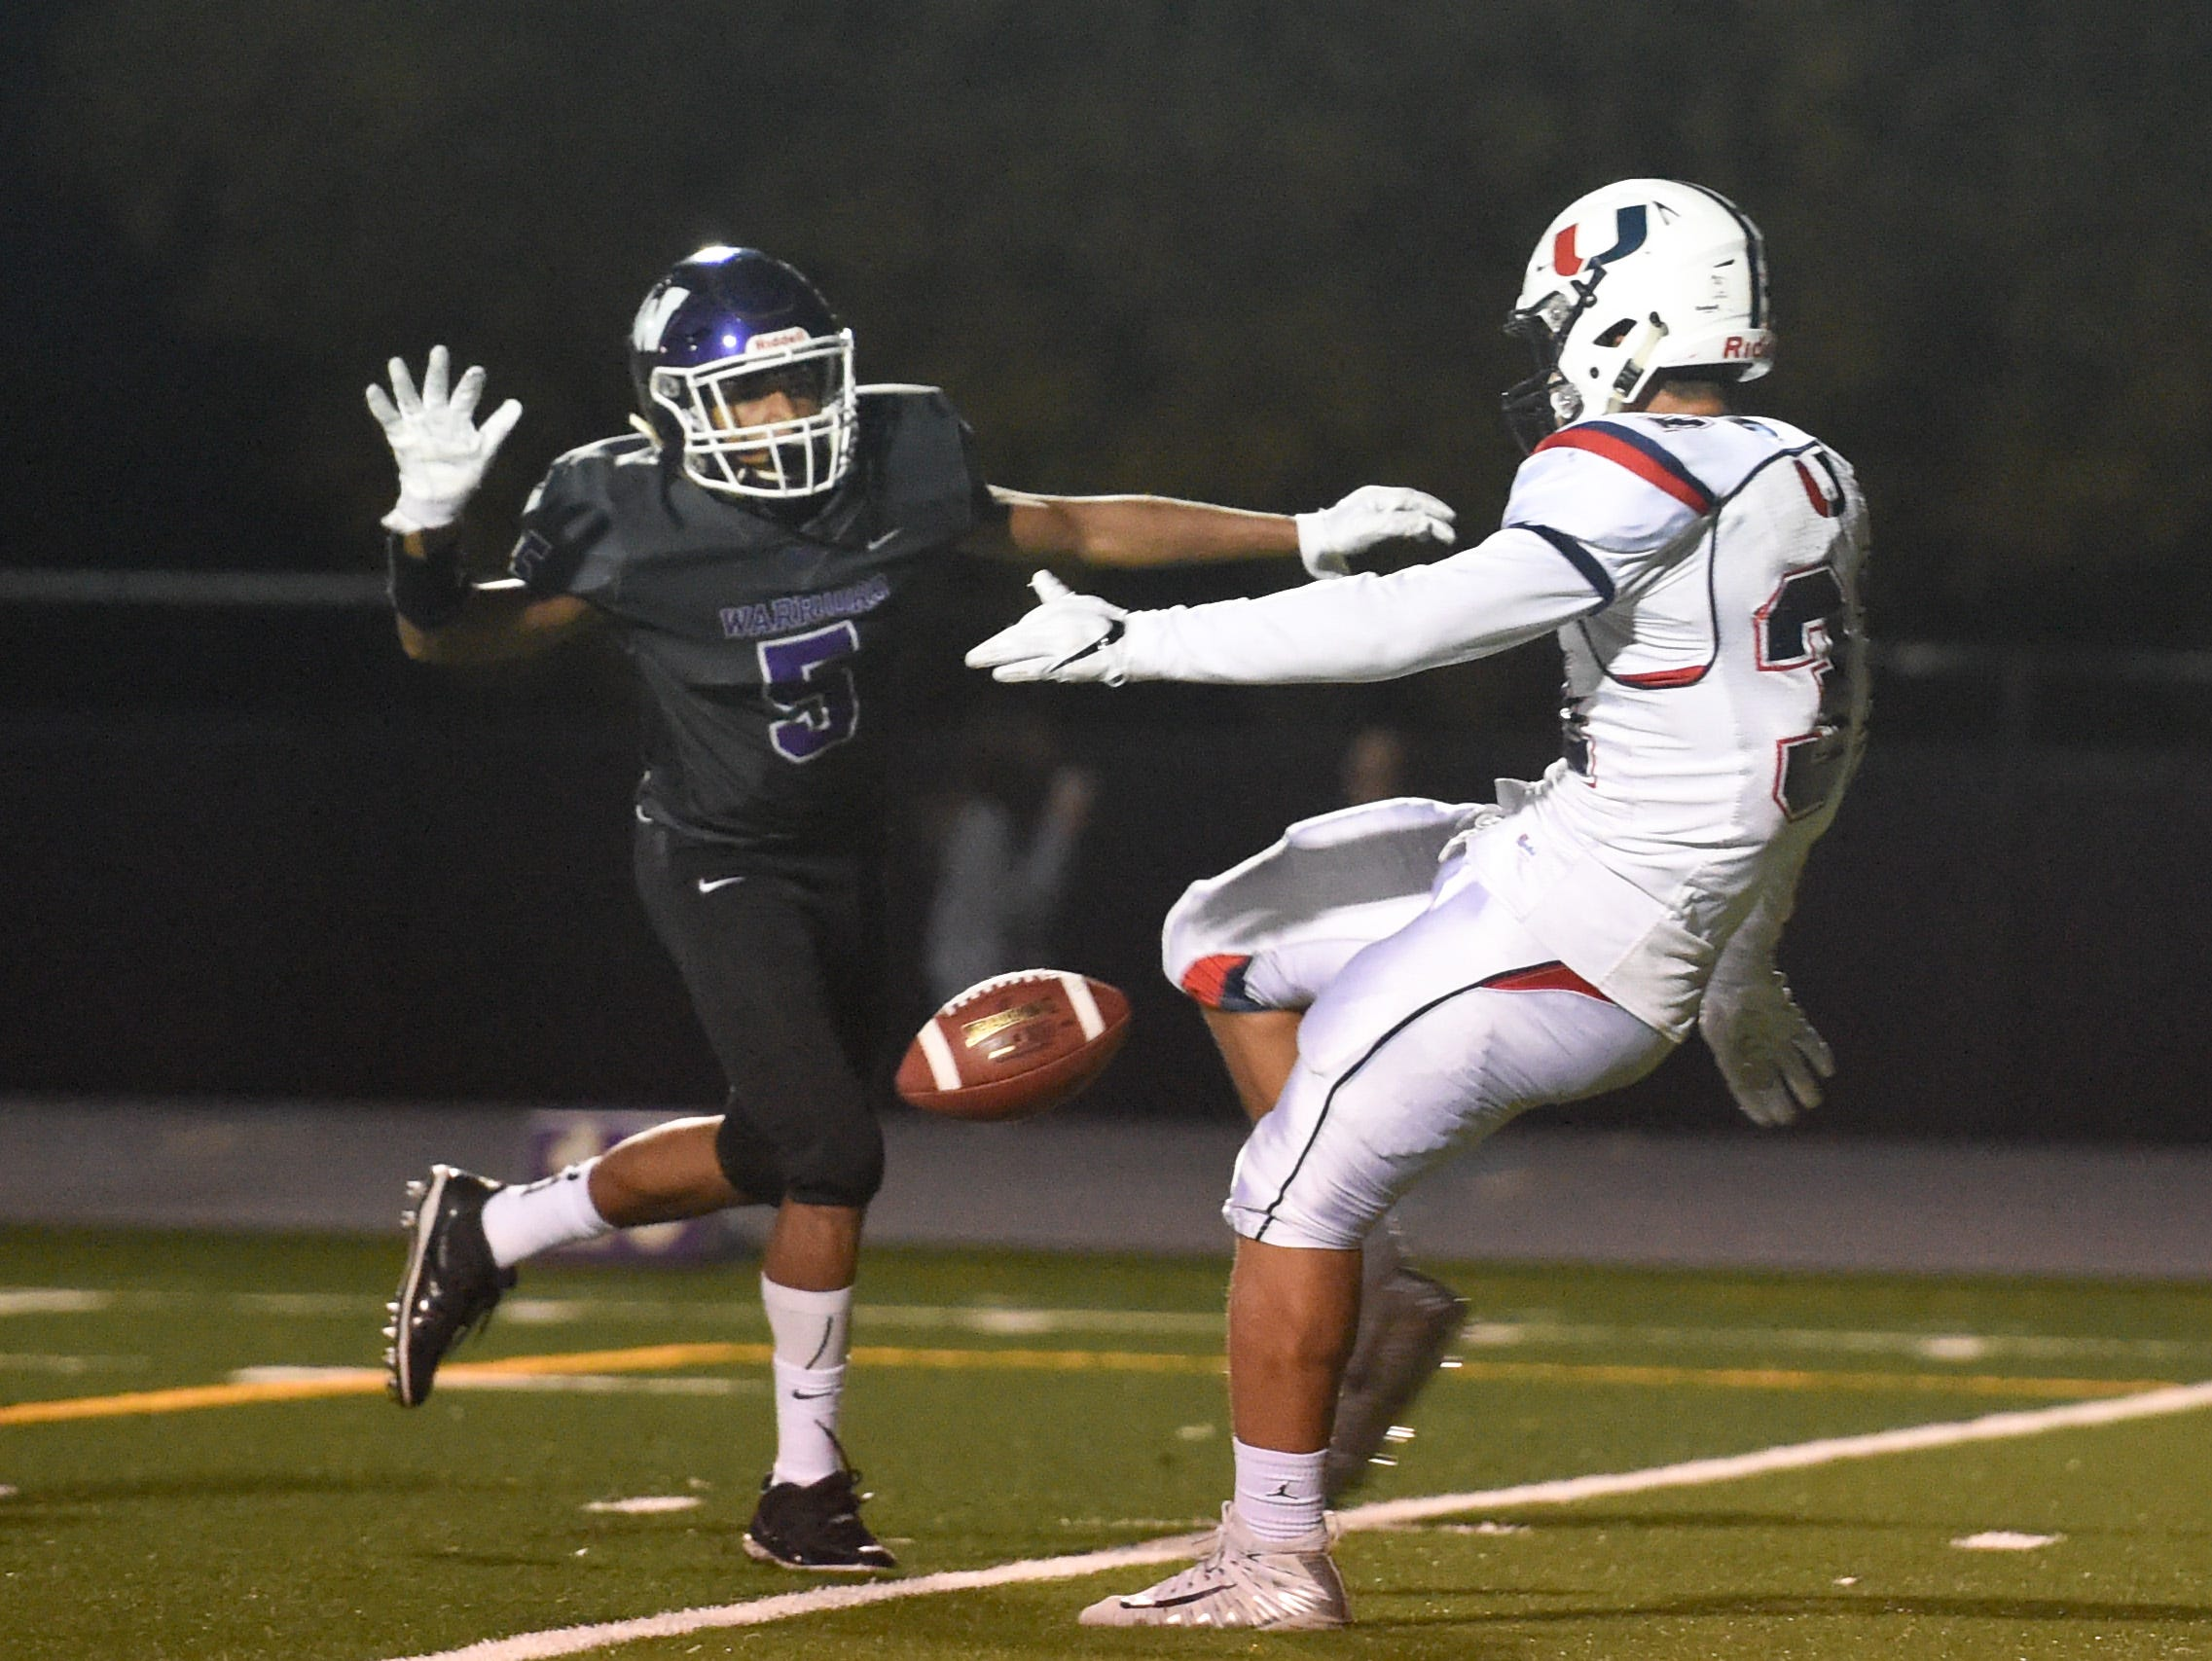 Urbandale's Jacob Brechtel (33) tries to get a punt away under pressure from Waukee's Aaron Smith (5) on Friday, Oct. 26, 2018 during a playoff game between the Waukee Warriors and the Urbandale J-Hawks at Waukee High School.